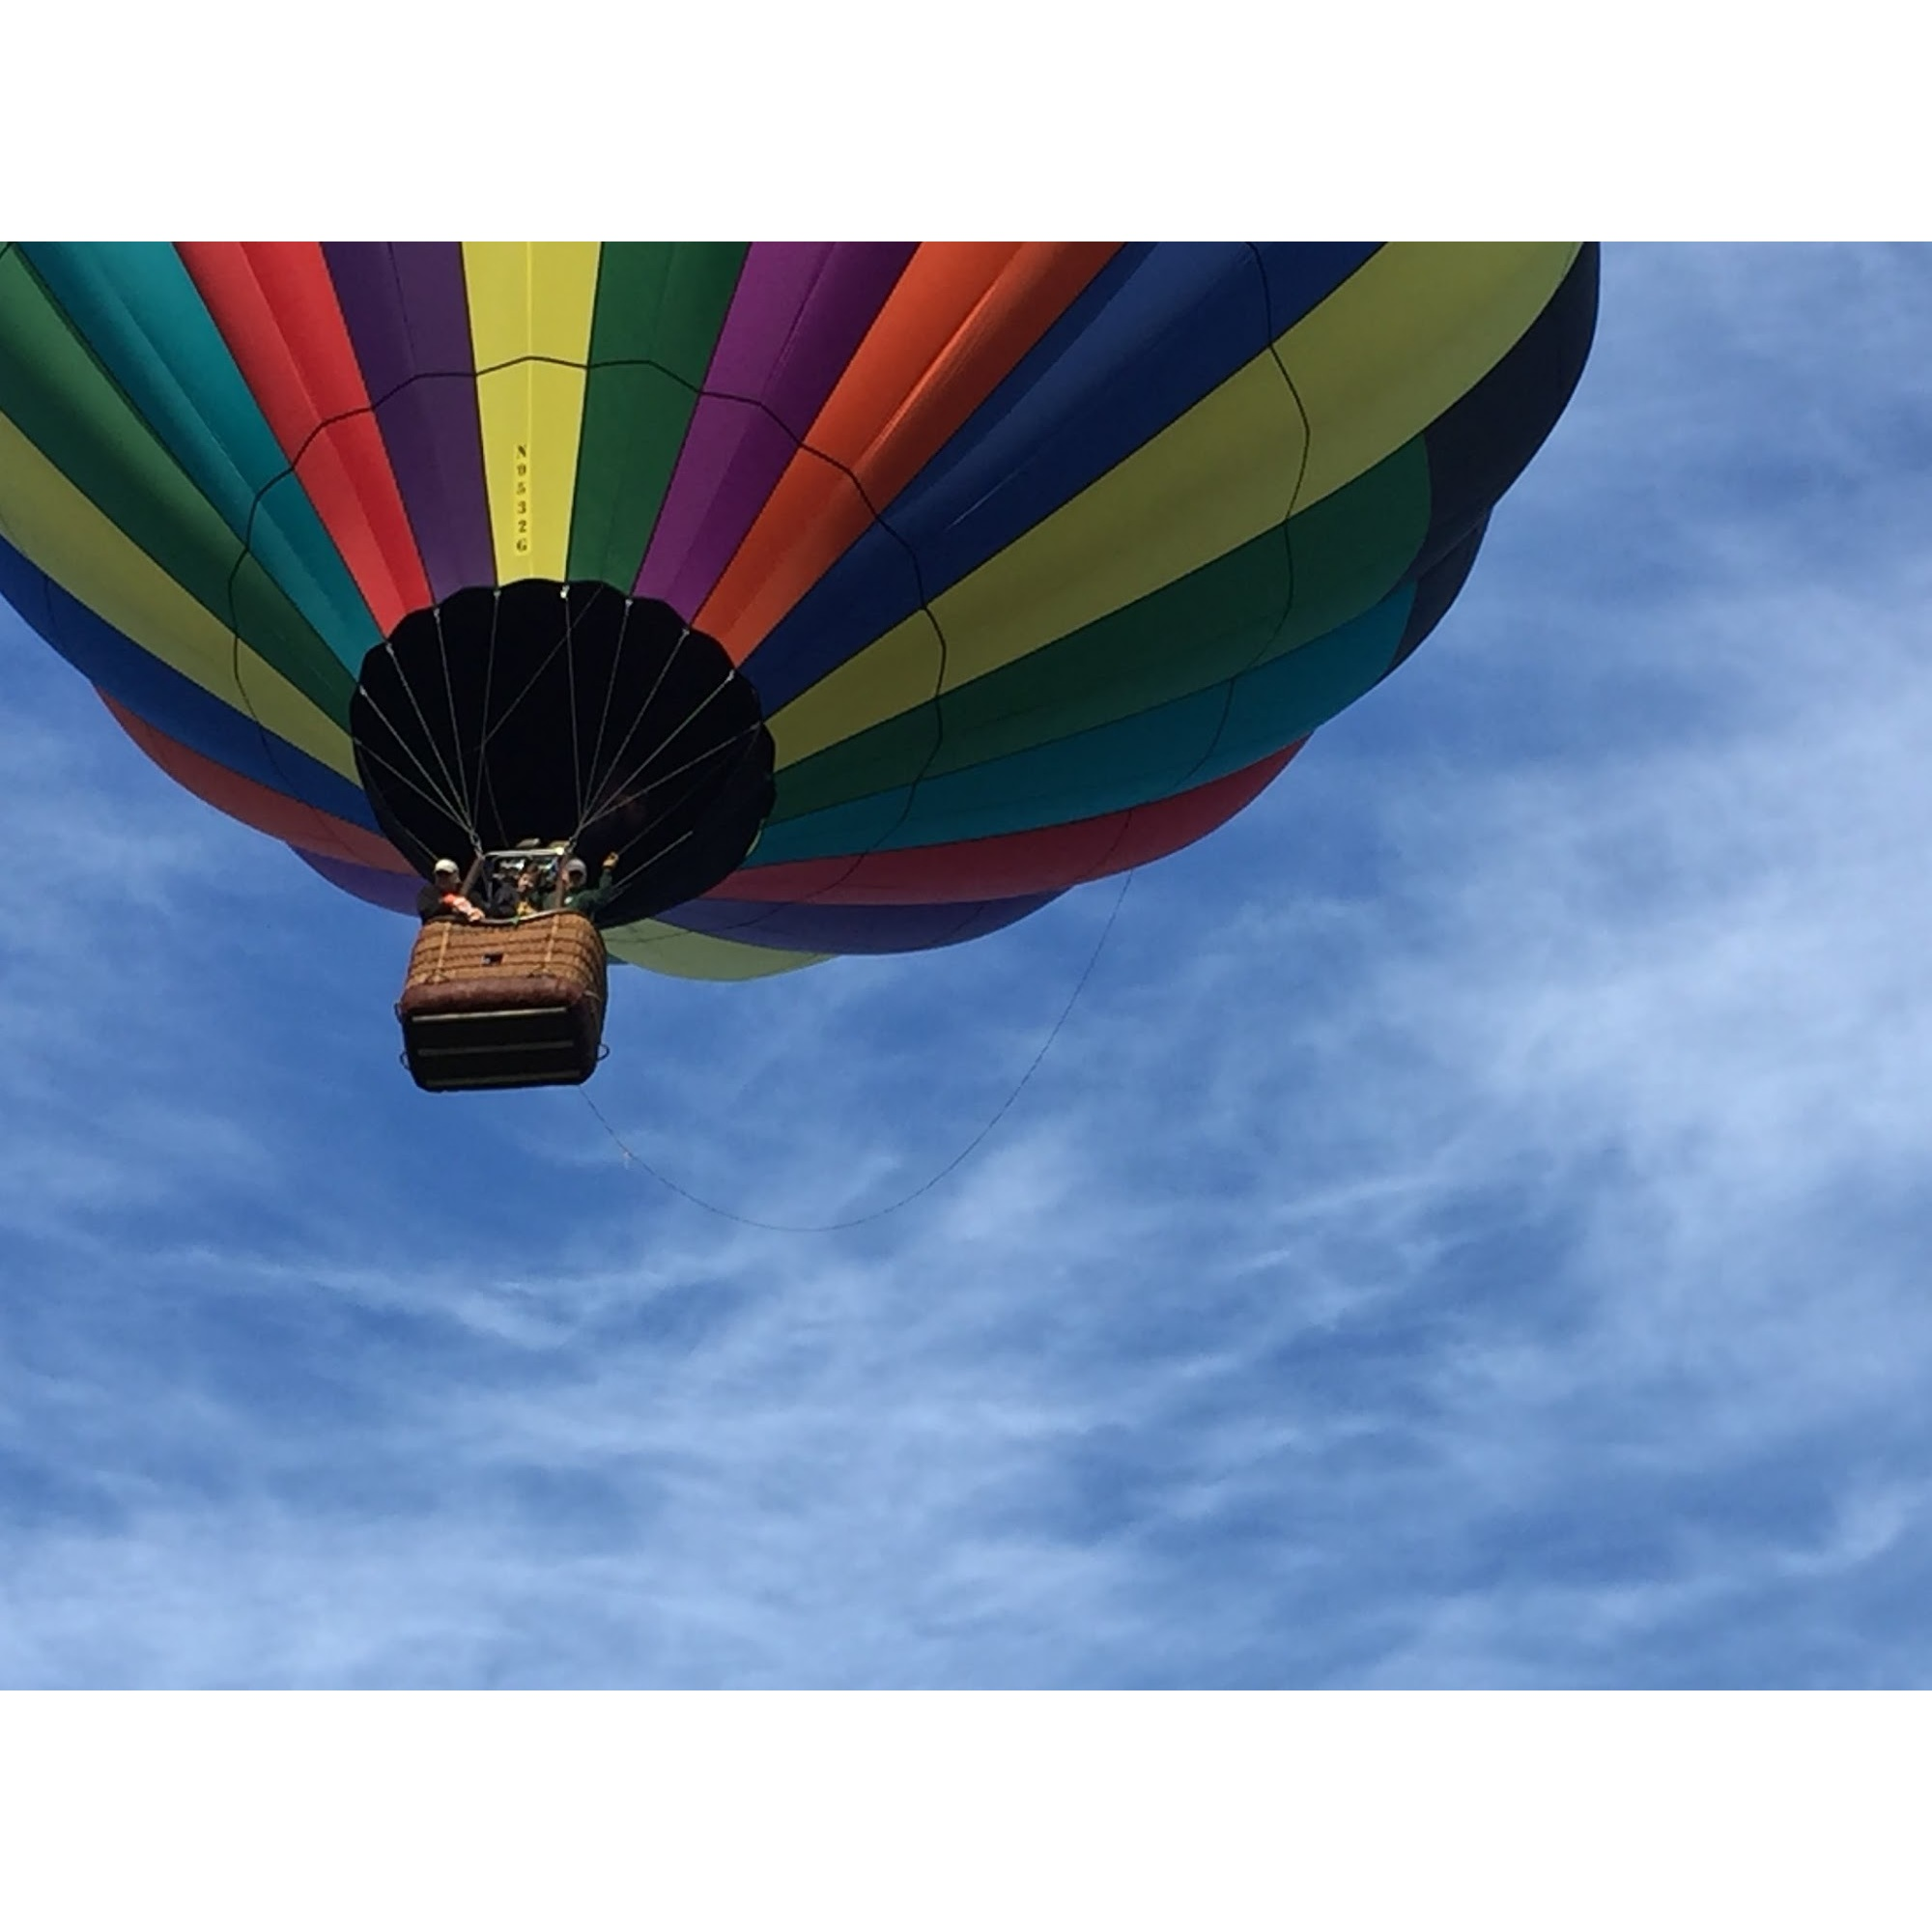 Sport Ballooning Xperience